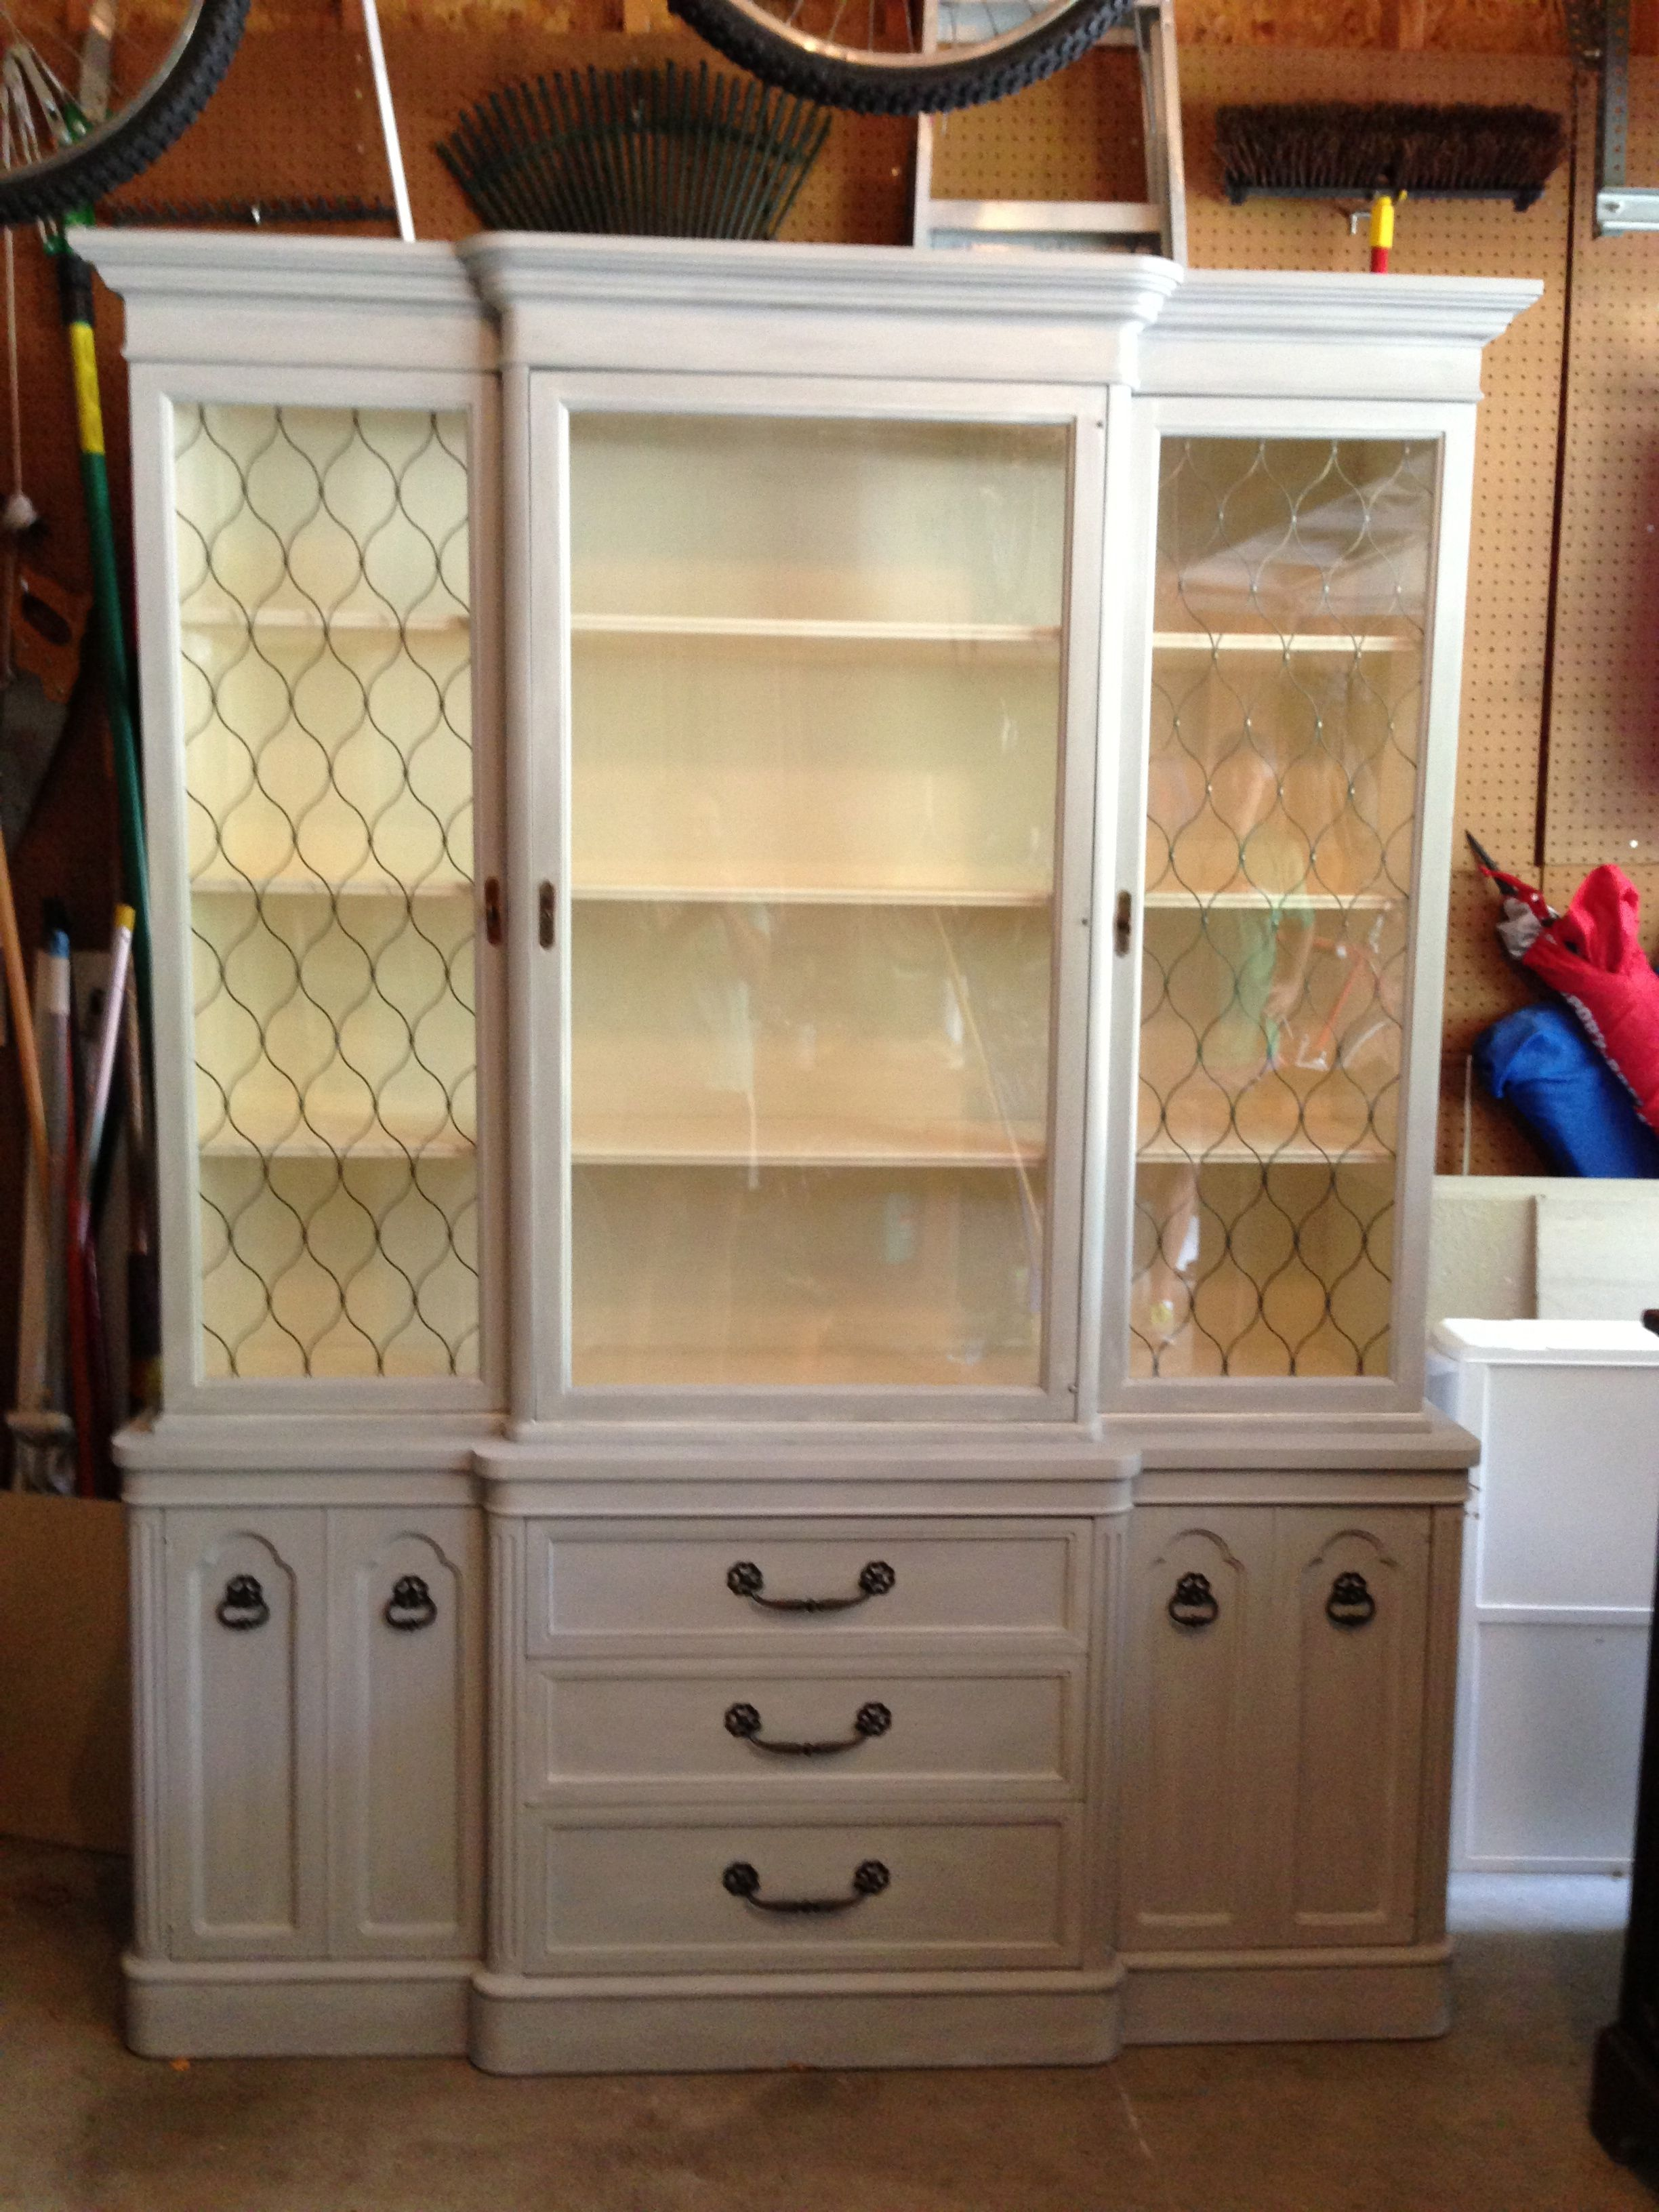 bella cabinet collectible wood vintage furnishings into a turning beauty an gorgeous refinished old china